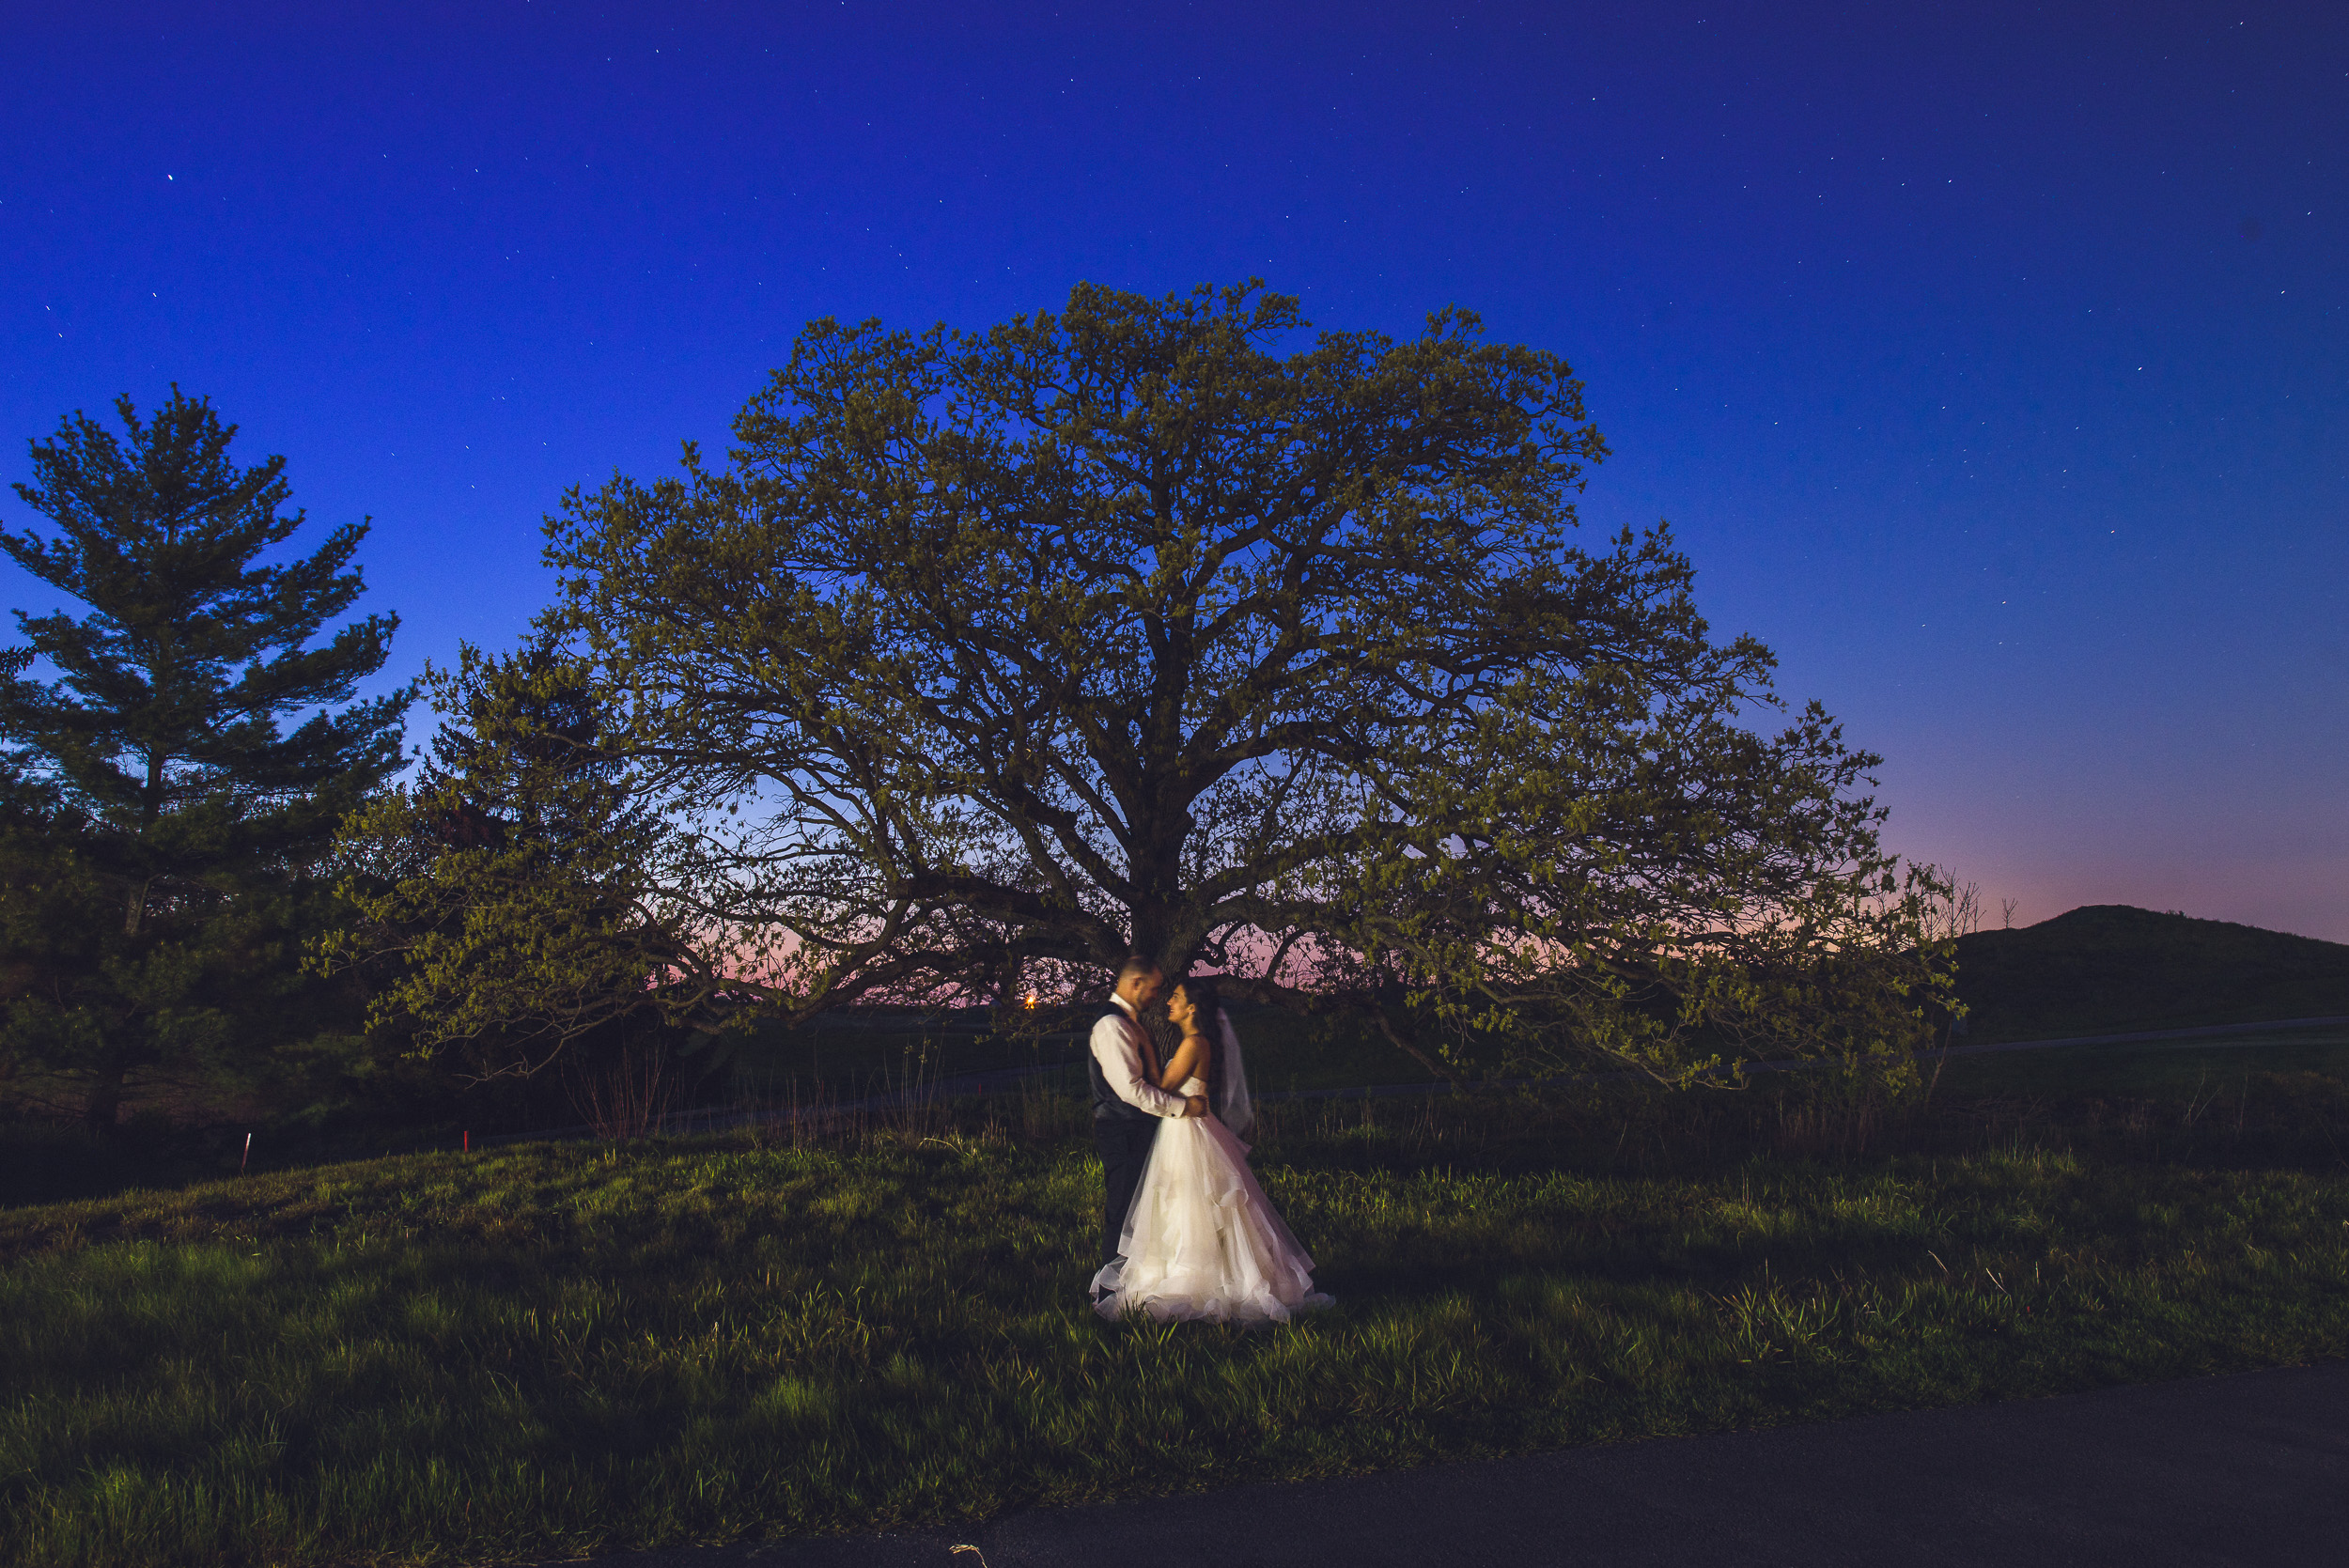 01-night-photography-kenosha-wedding-photographer